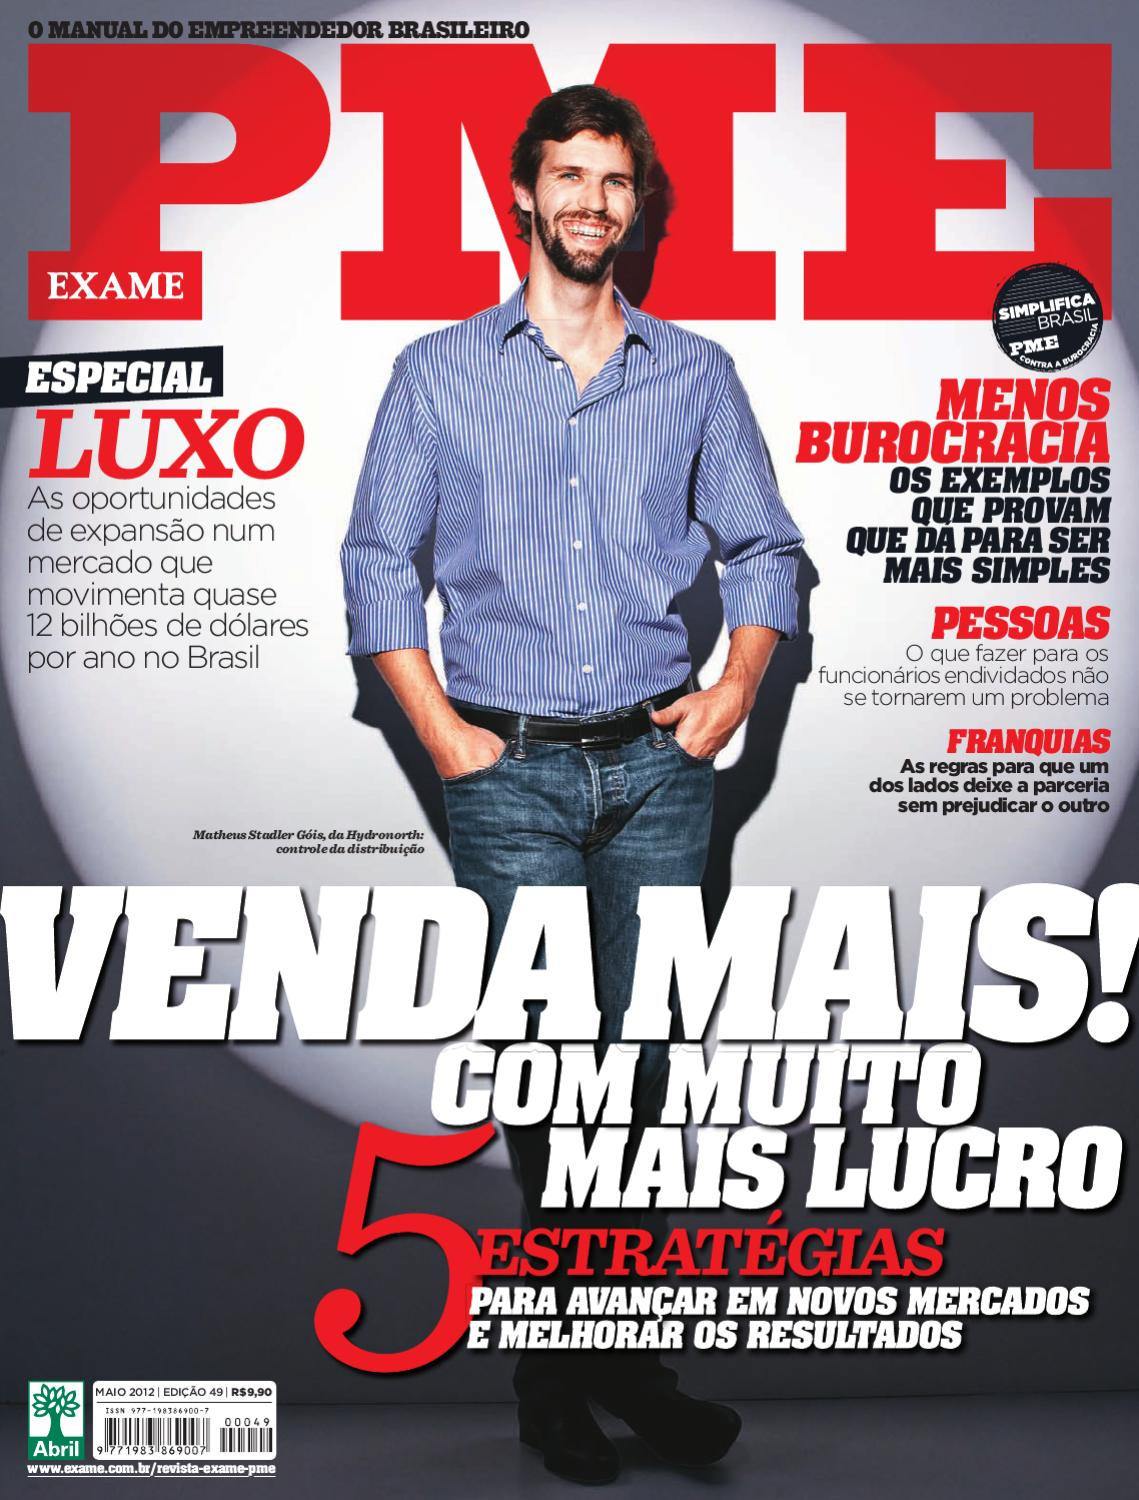 8d2c14881 EXAME PME 49 by Revista EXAME - issuu